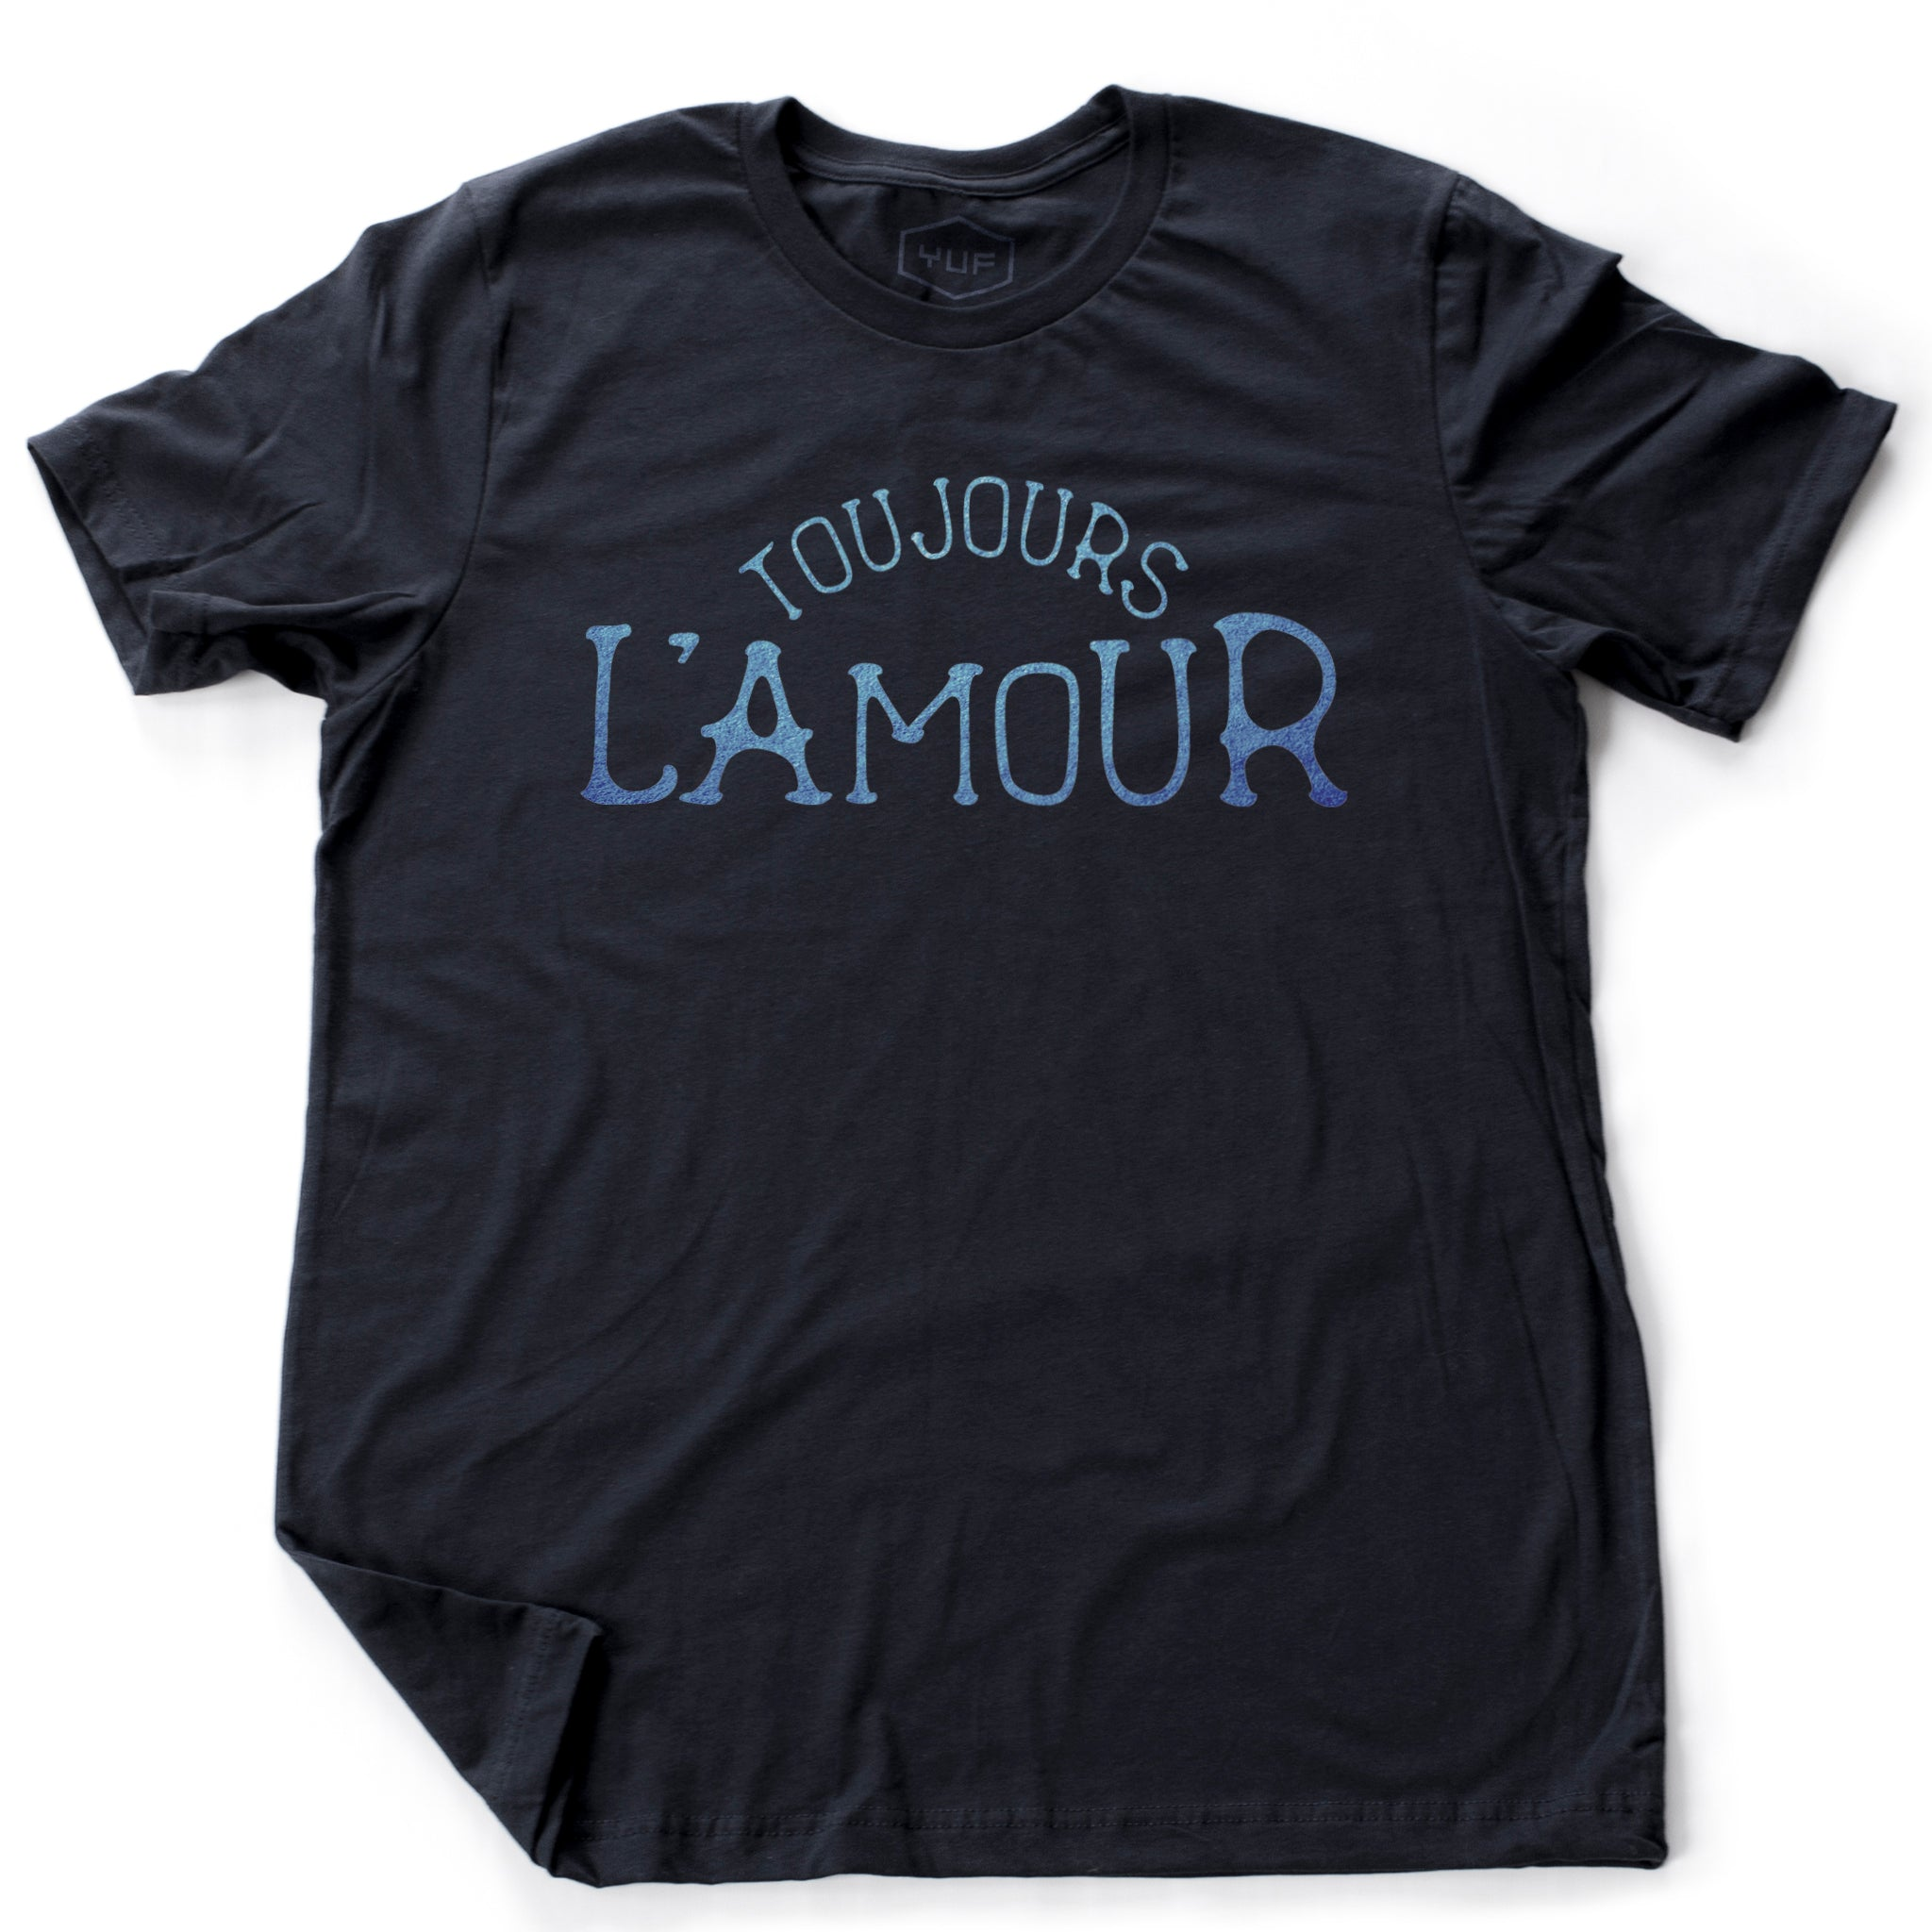 "A unisex fashion t-shirt in Classic Navy Blue with the retro, vintage-inspired typographic statement ""TOUJOURS L'AMOUR,"" French for ""love always."" By fashion brand YUF, from Wolfsaint.net"